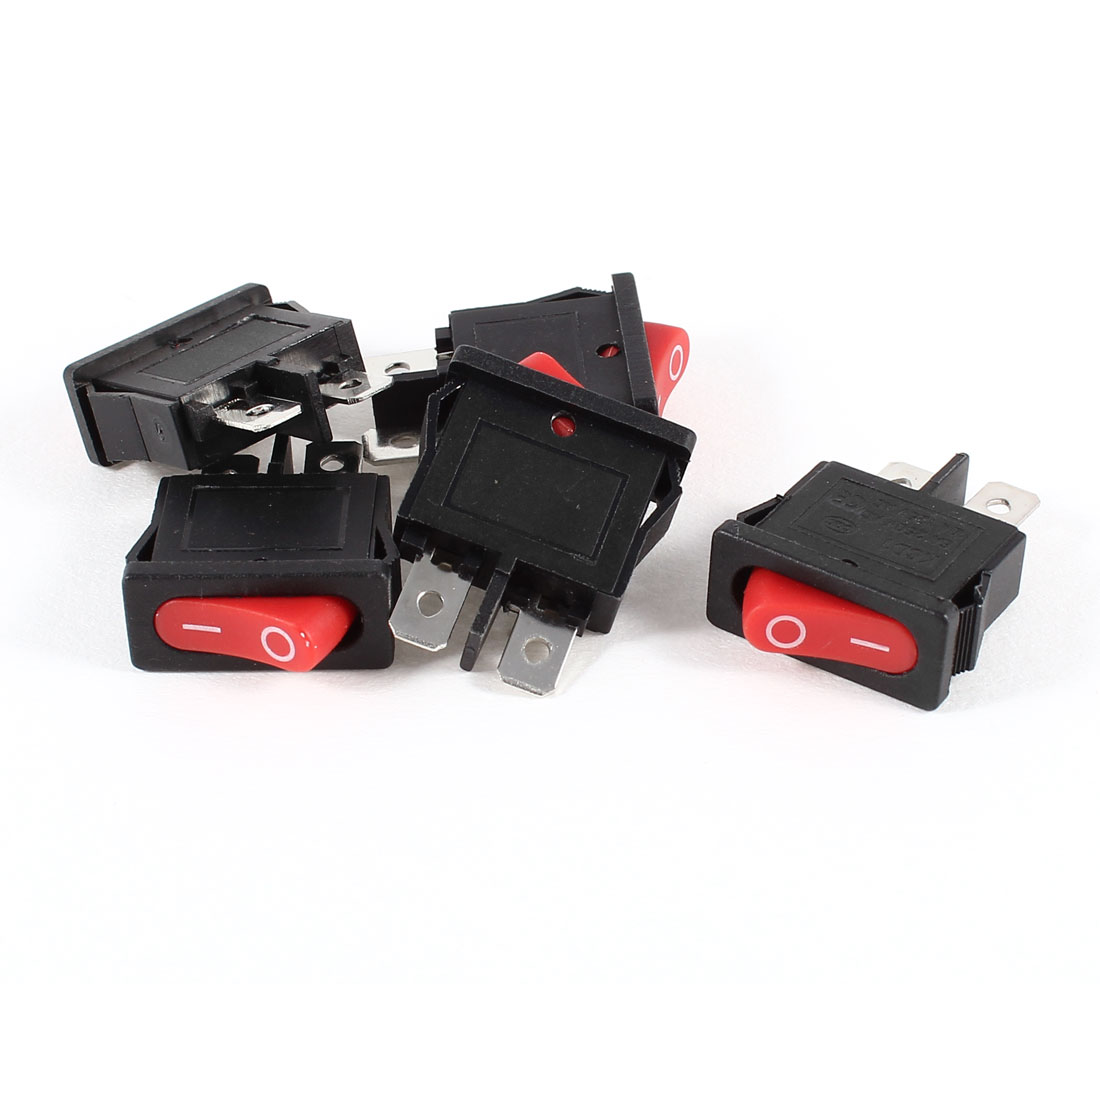 5 Pcs AC 6A/250V 10A/125V Red Light I/O SPST Snap in Boat Rocker Switch